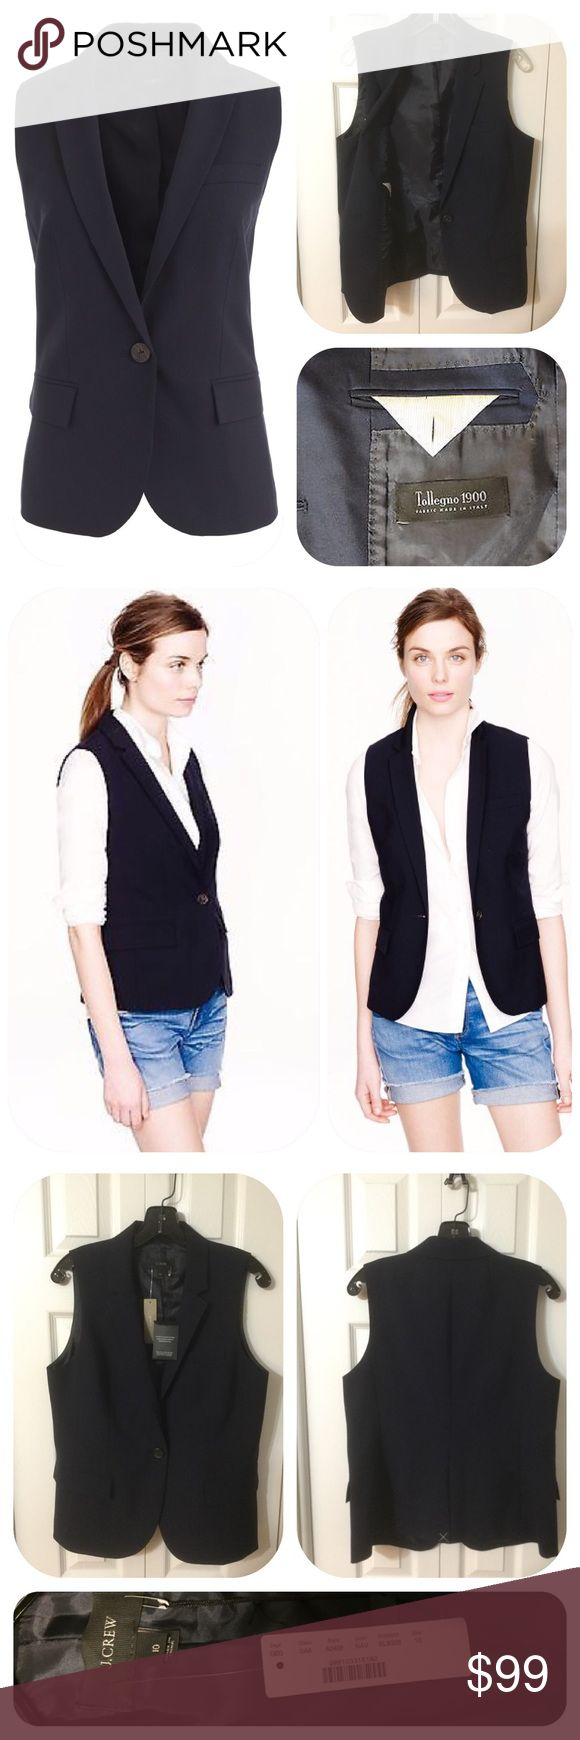 """J. Crew Navy Stretch Wool Vest in Sizes 8 & 10 I also love vests so much so that I ended up with 3 of the same in different sizes, so I'm Poshing 2. With J. Crew Navy Ankle Pants it's my default """"suit"""" here in FL. Looks great w/tank, and flats or heels. J. Crew showed it with cutoffs. Size 8: NWOT, Size 10: NWT. FROM J. CREW: An alternative to your usual blazer, just as polished, but w/new layering possibilities. Wool with a hint of stretch. Notch collar. Front Flap pockets. Lined. Felt…"""